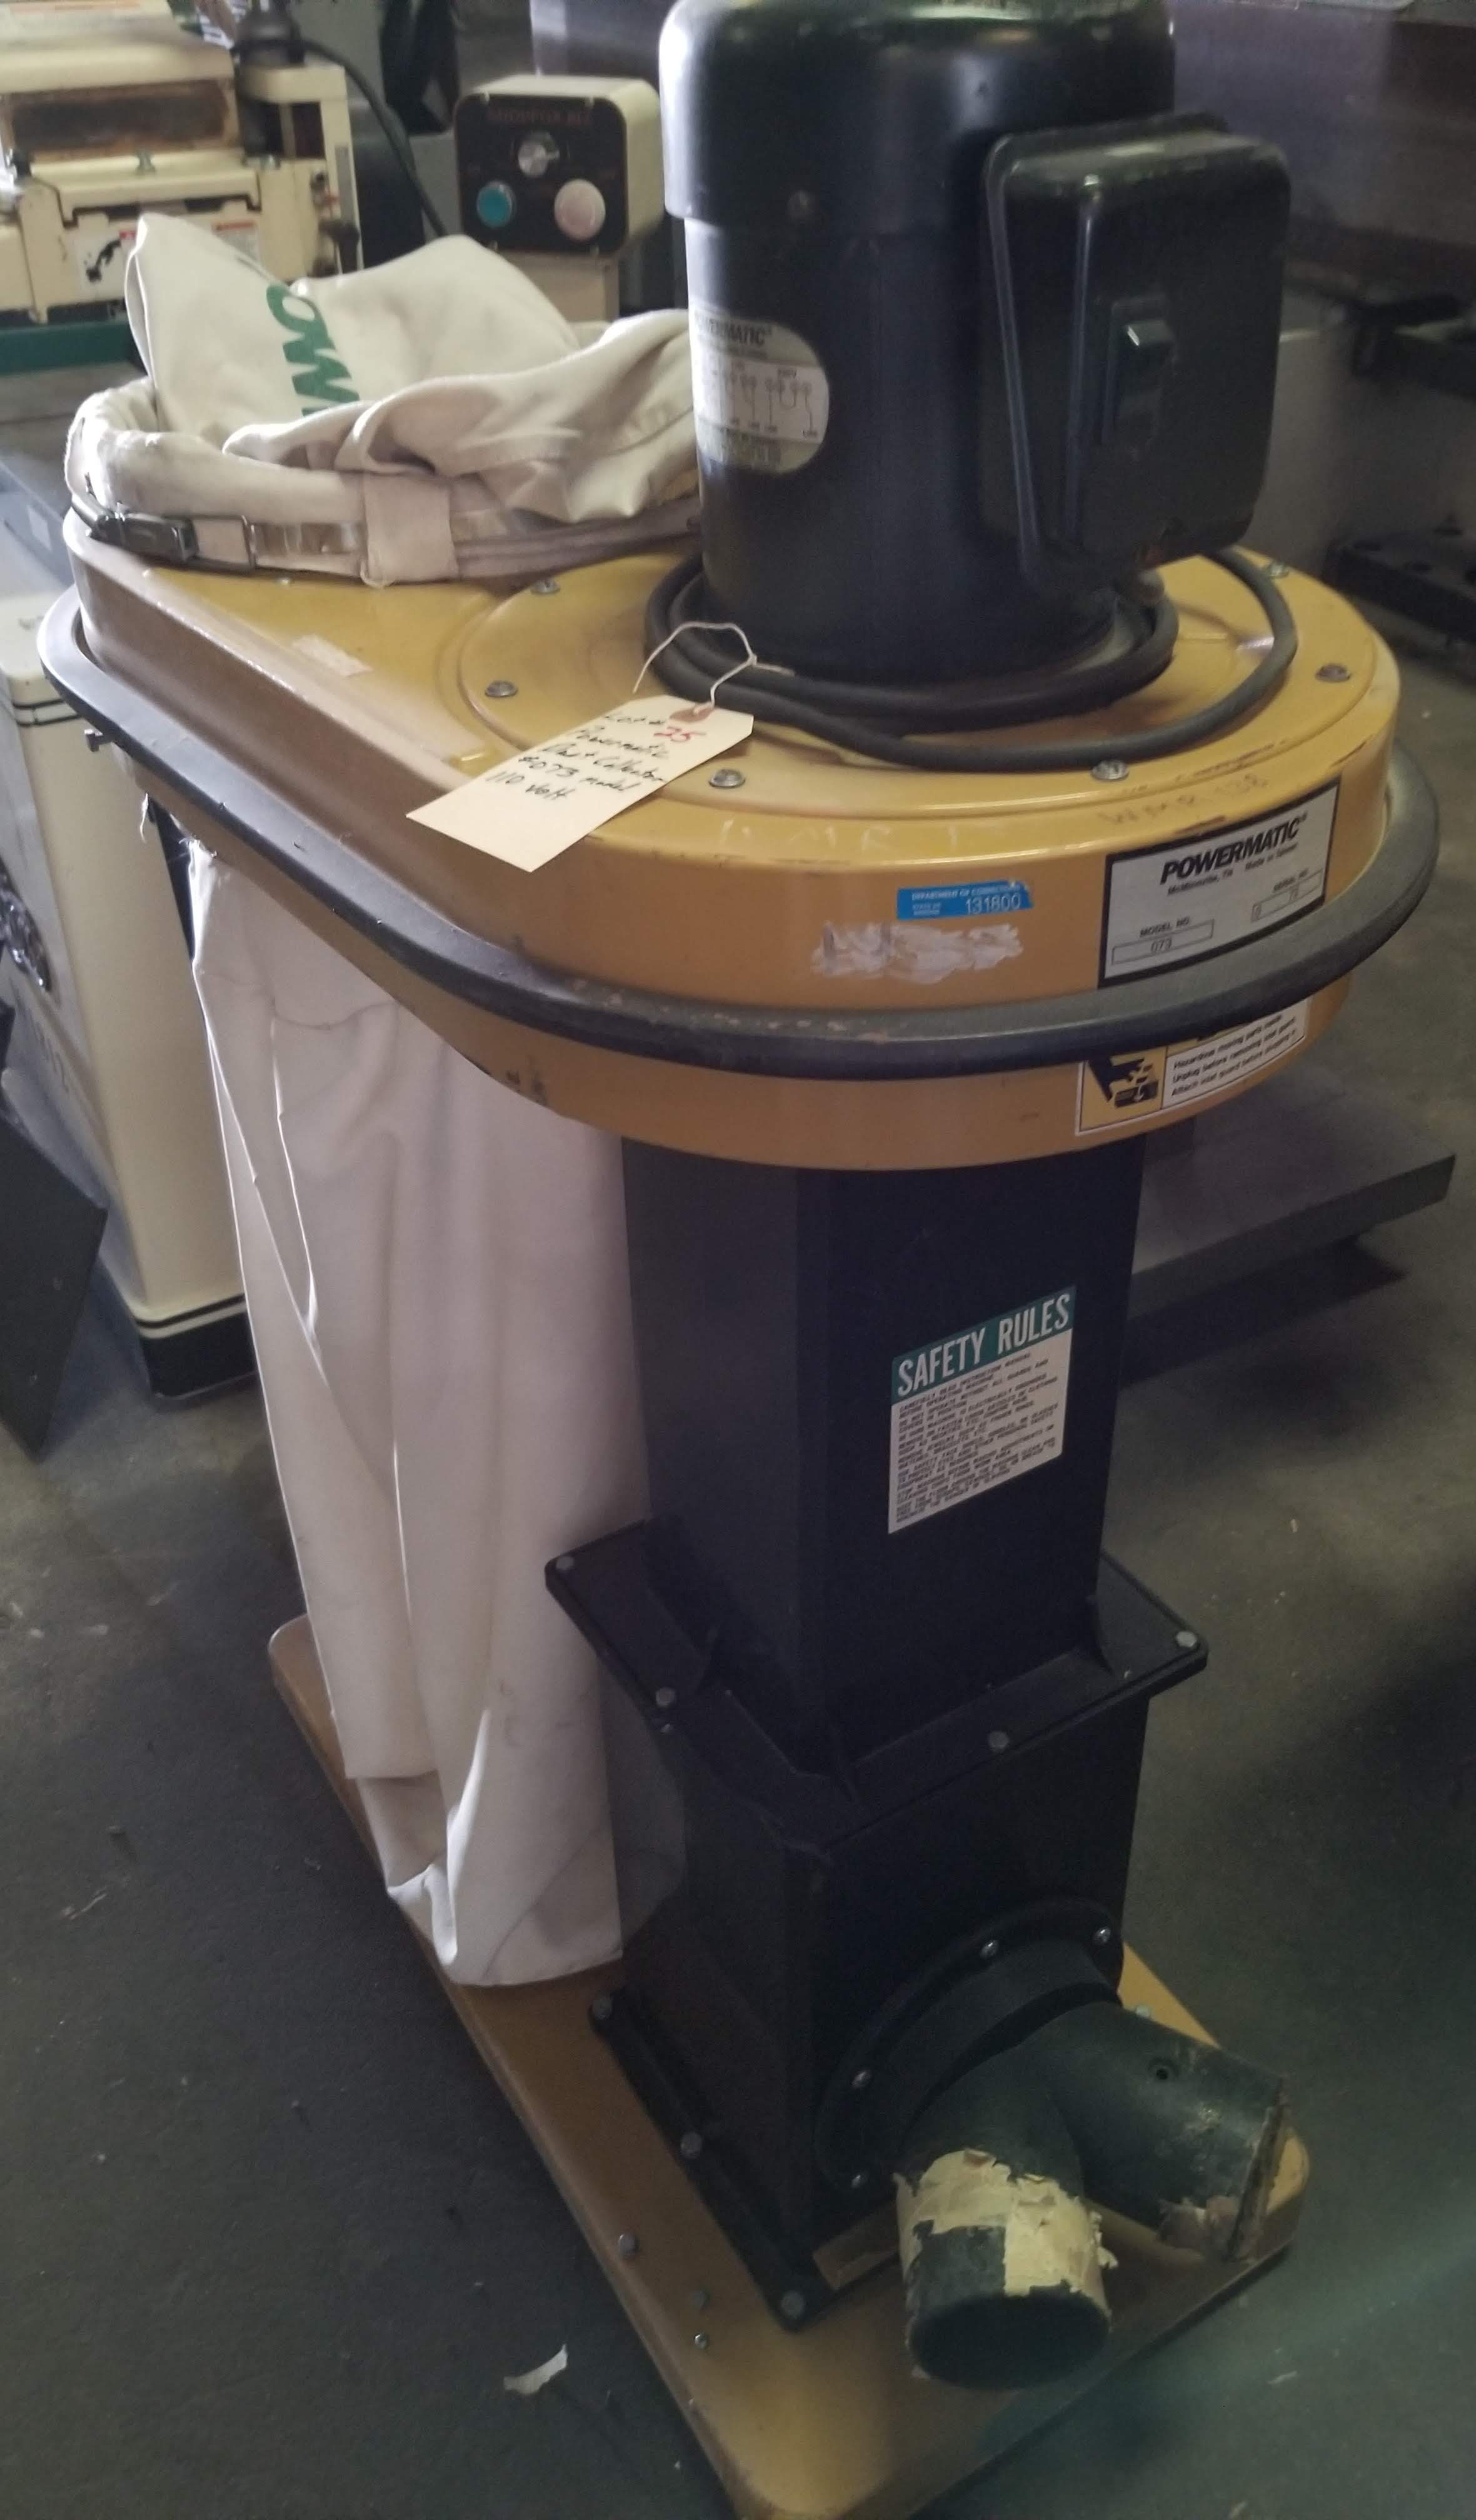 Powermatic Dust Collector Model # 073, 1.5 hp 110V, Top & Bottom Bag, (2) 4-Dust Chutes, Casters. - Image 3 of 5